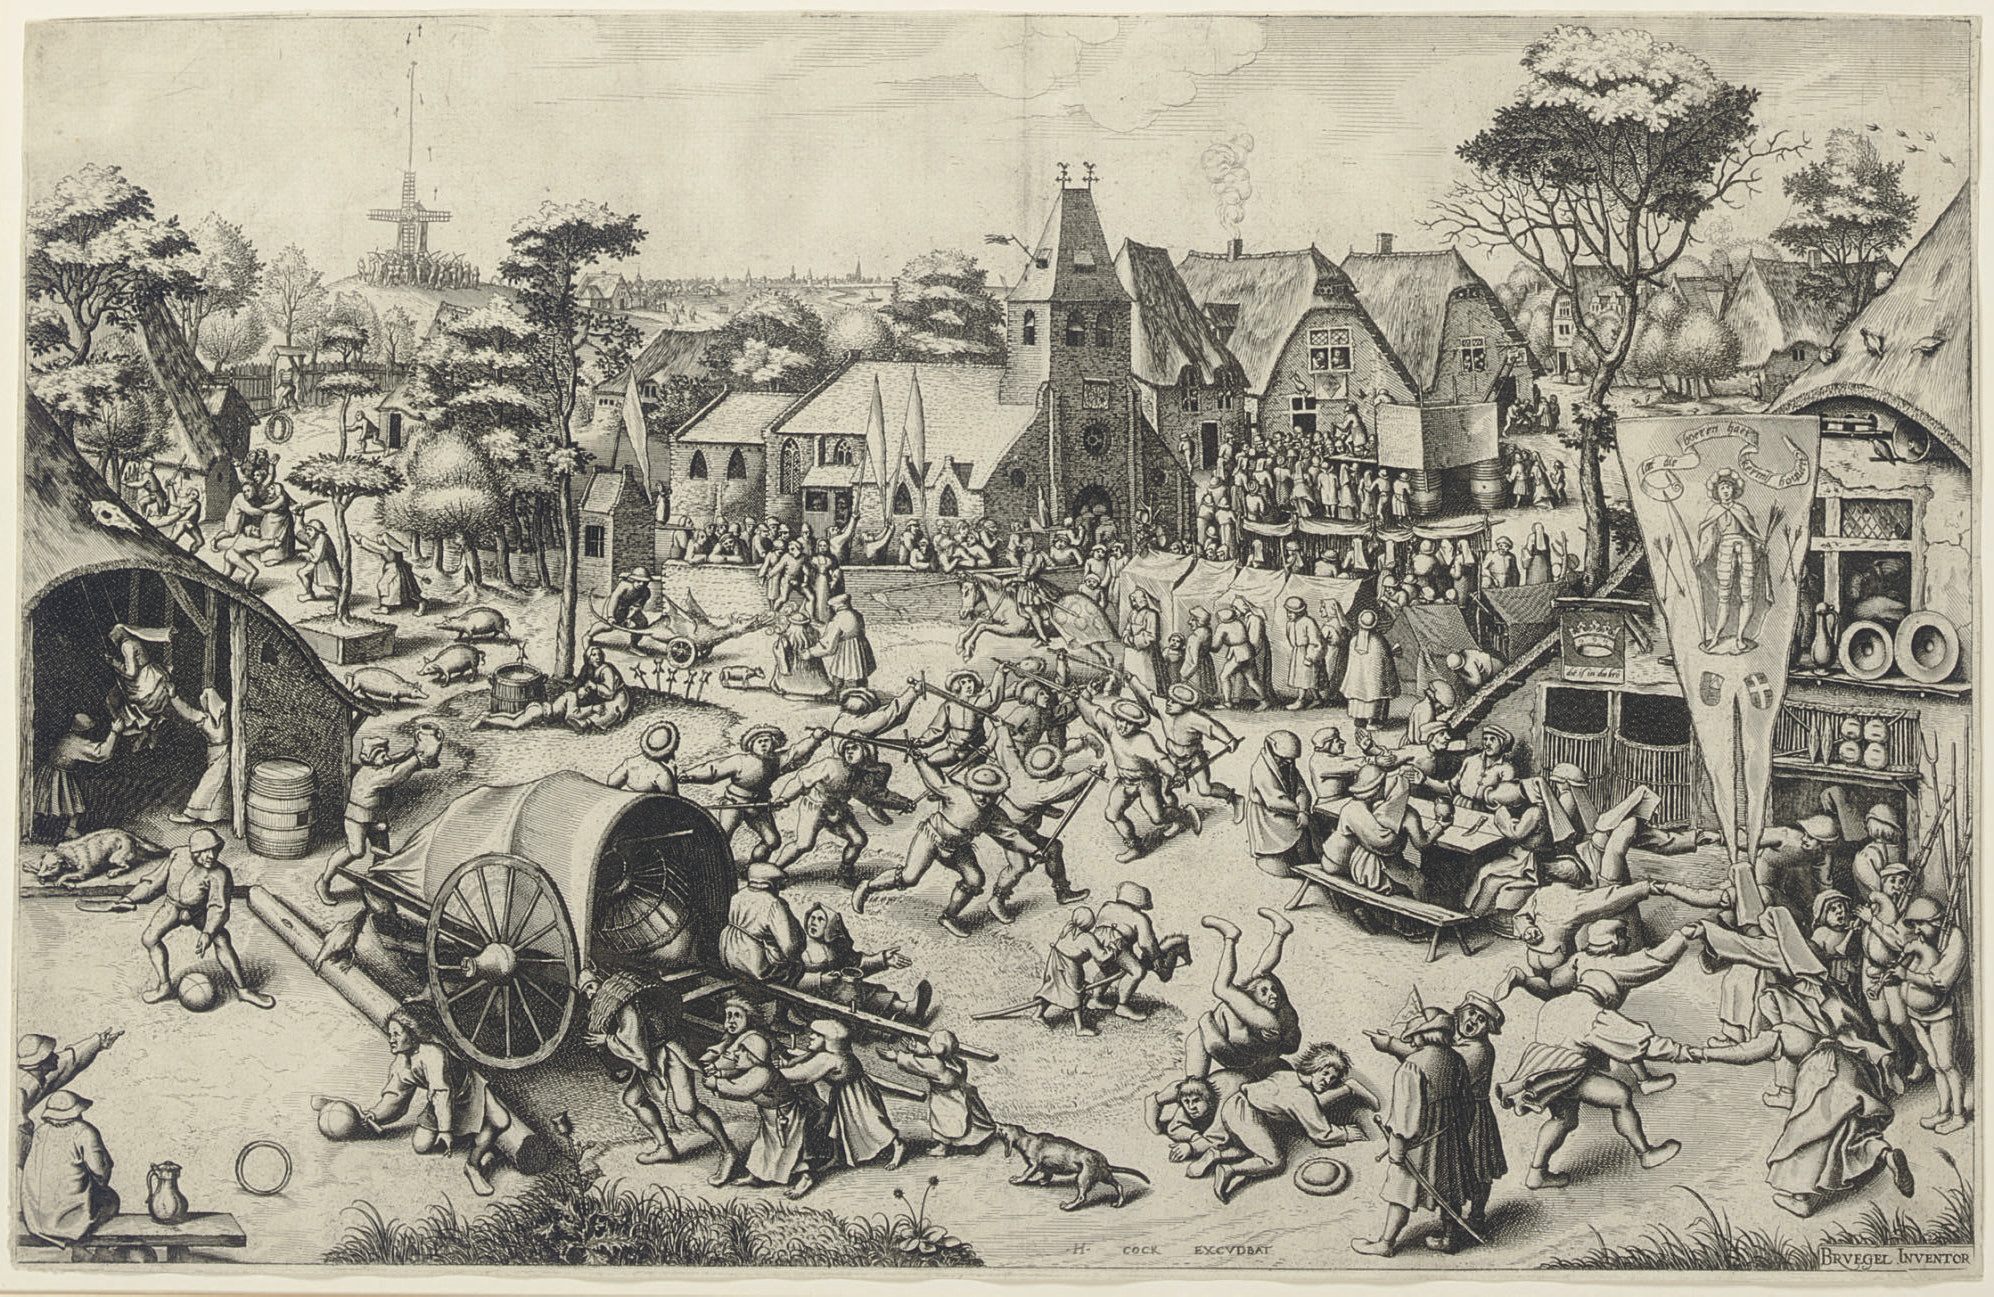 After Pieter Bruegel the Elder